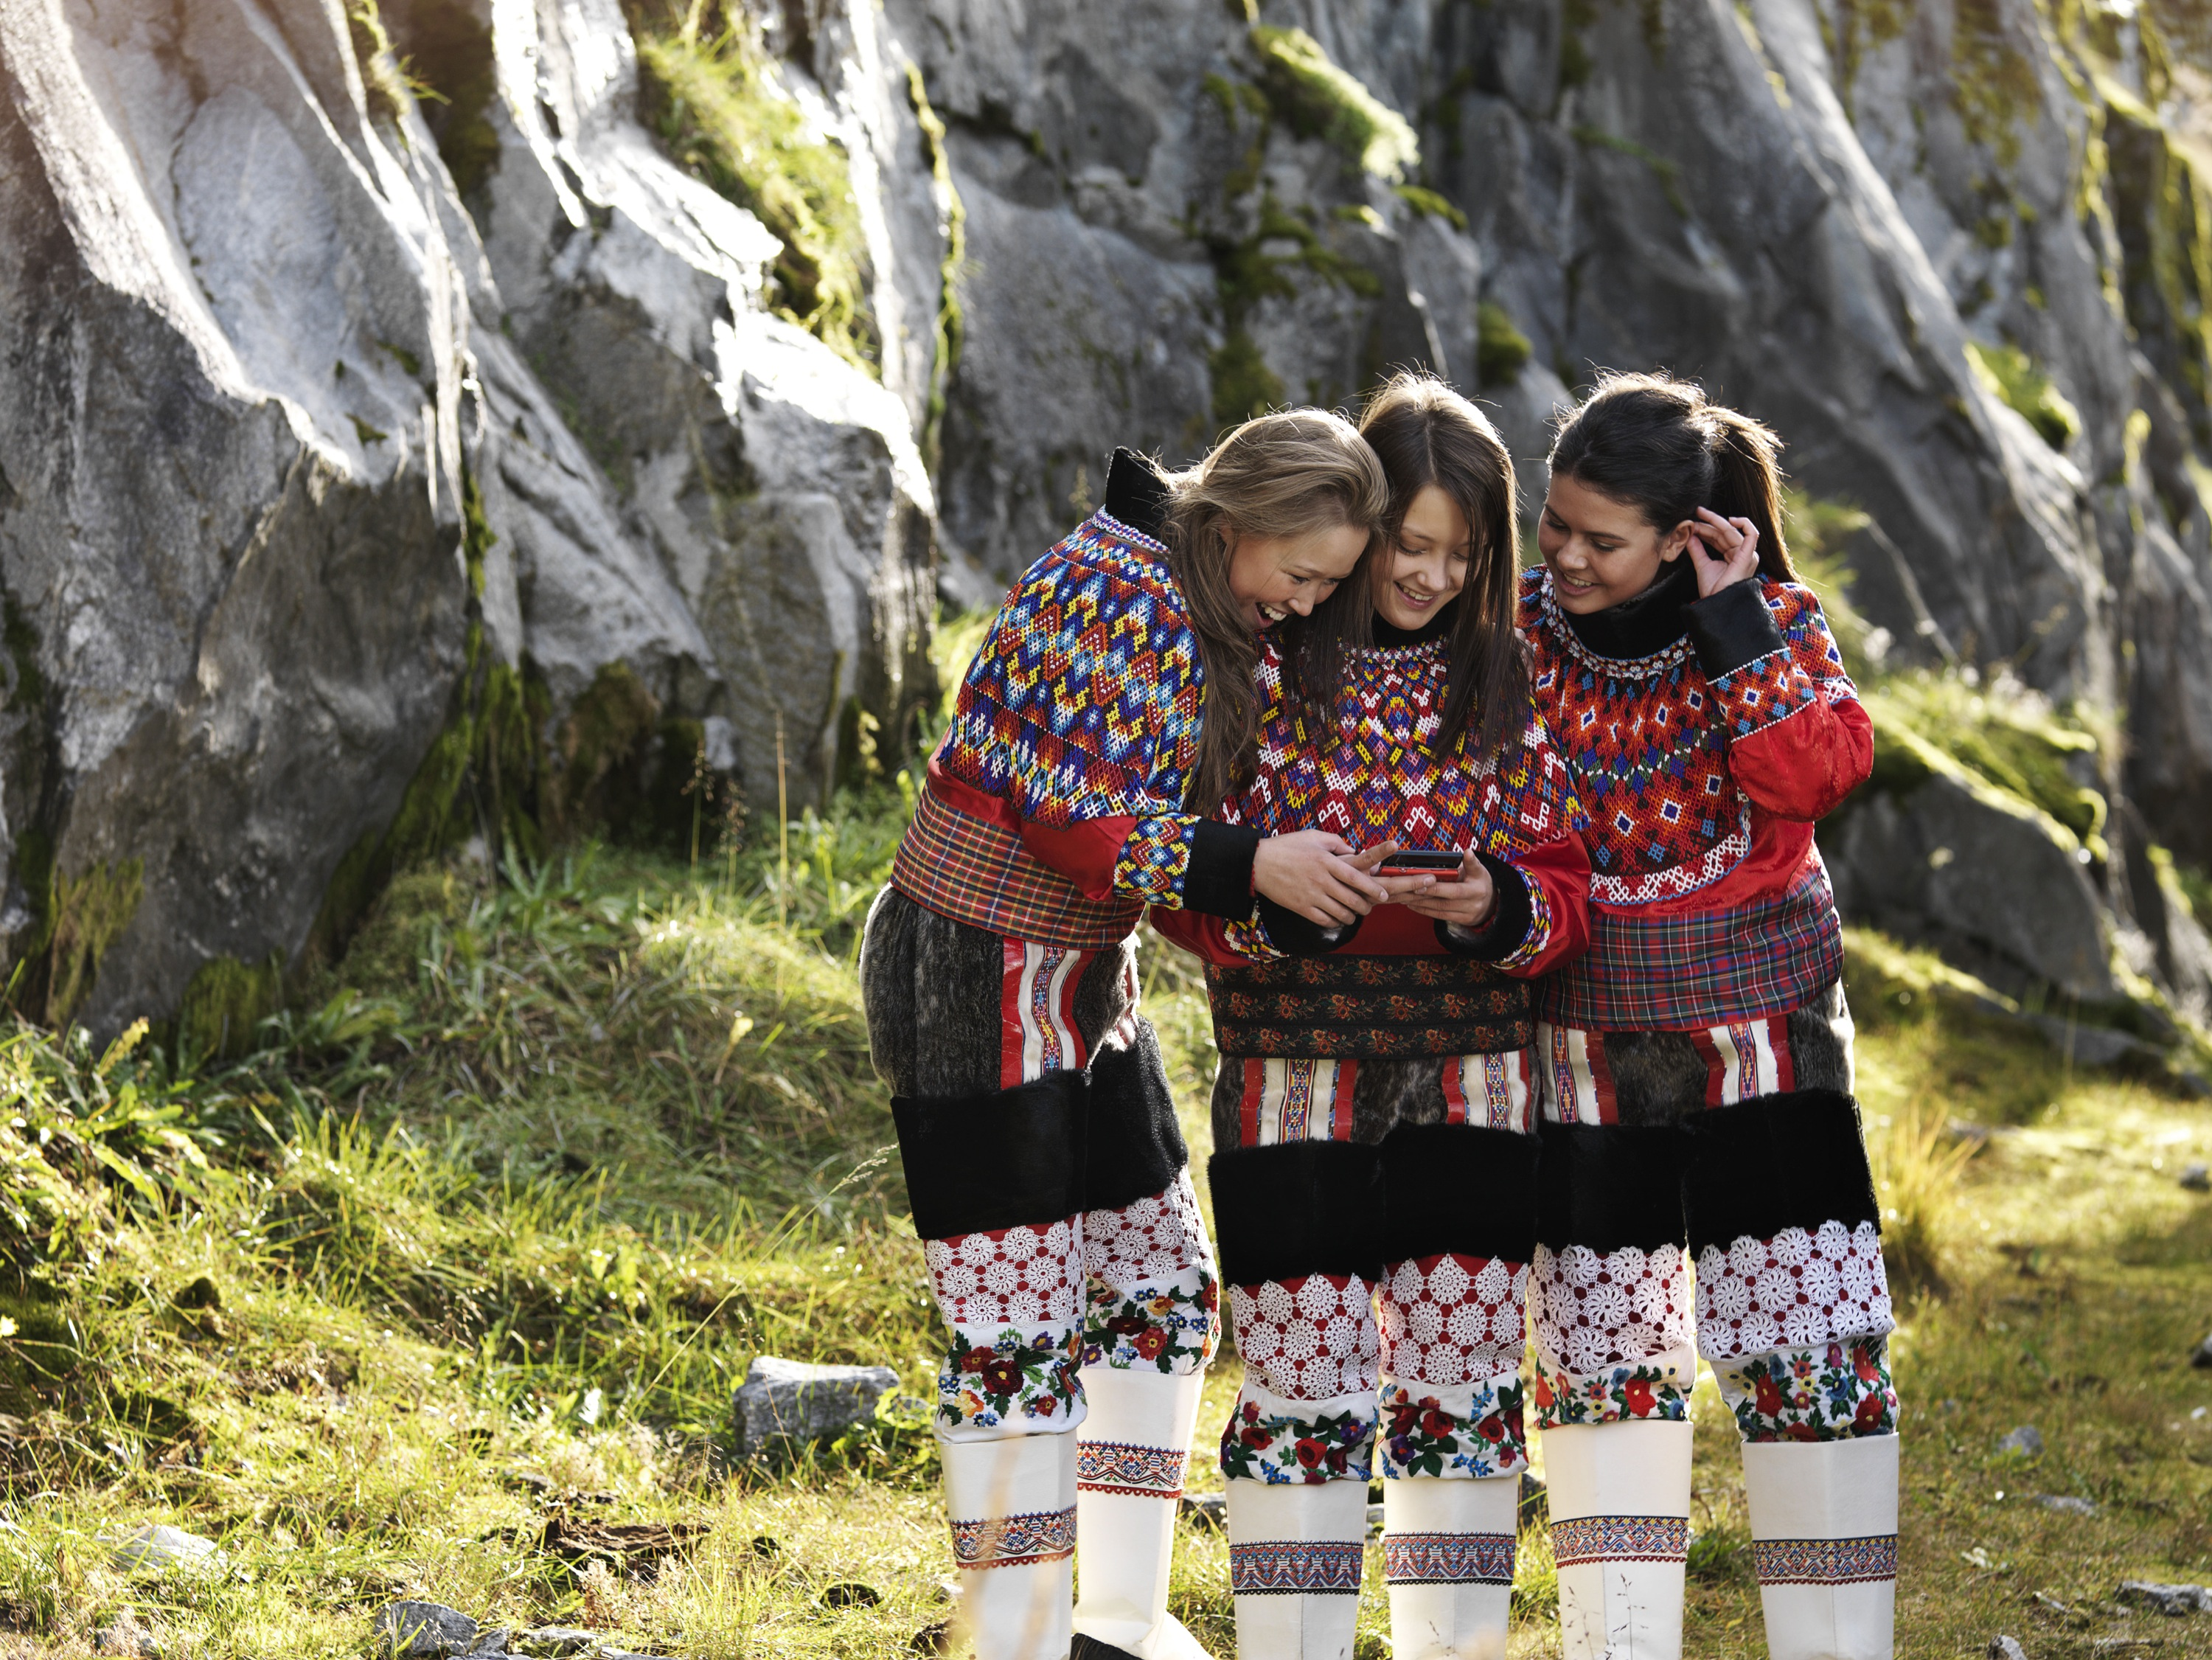 Photo © www.greenland.com | People of Greenland